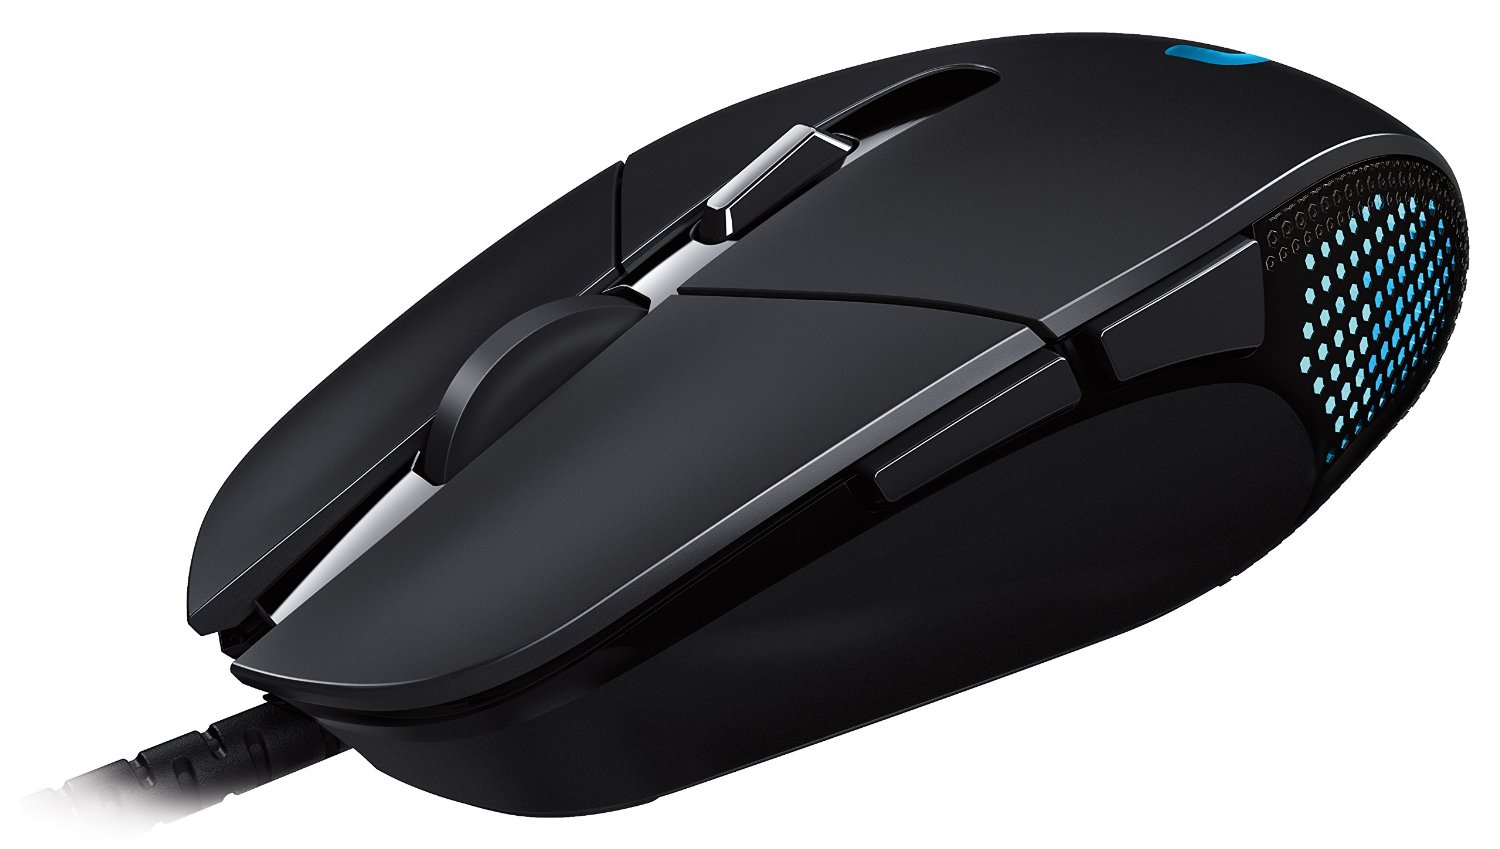 Logitech G302 Daedalus Prime MOBA Gaming Mouse<br>